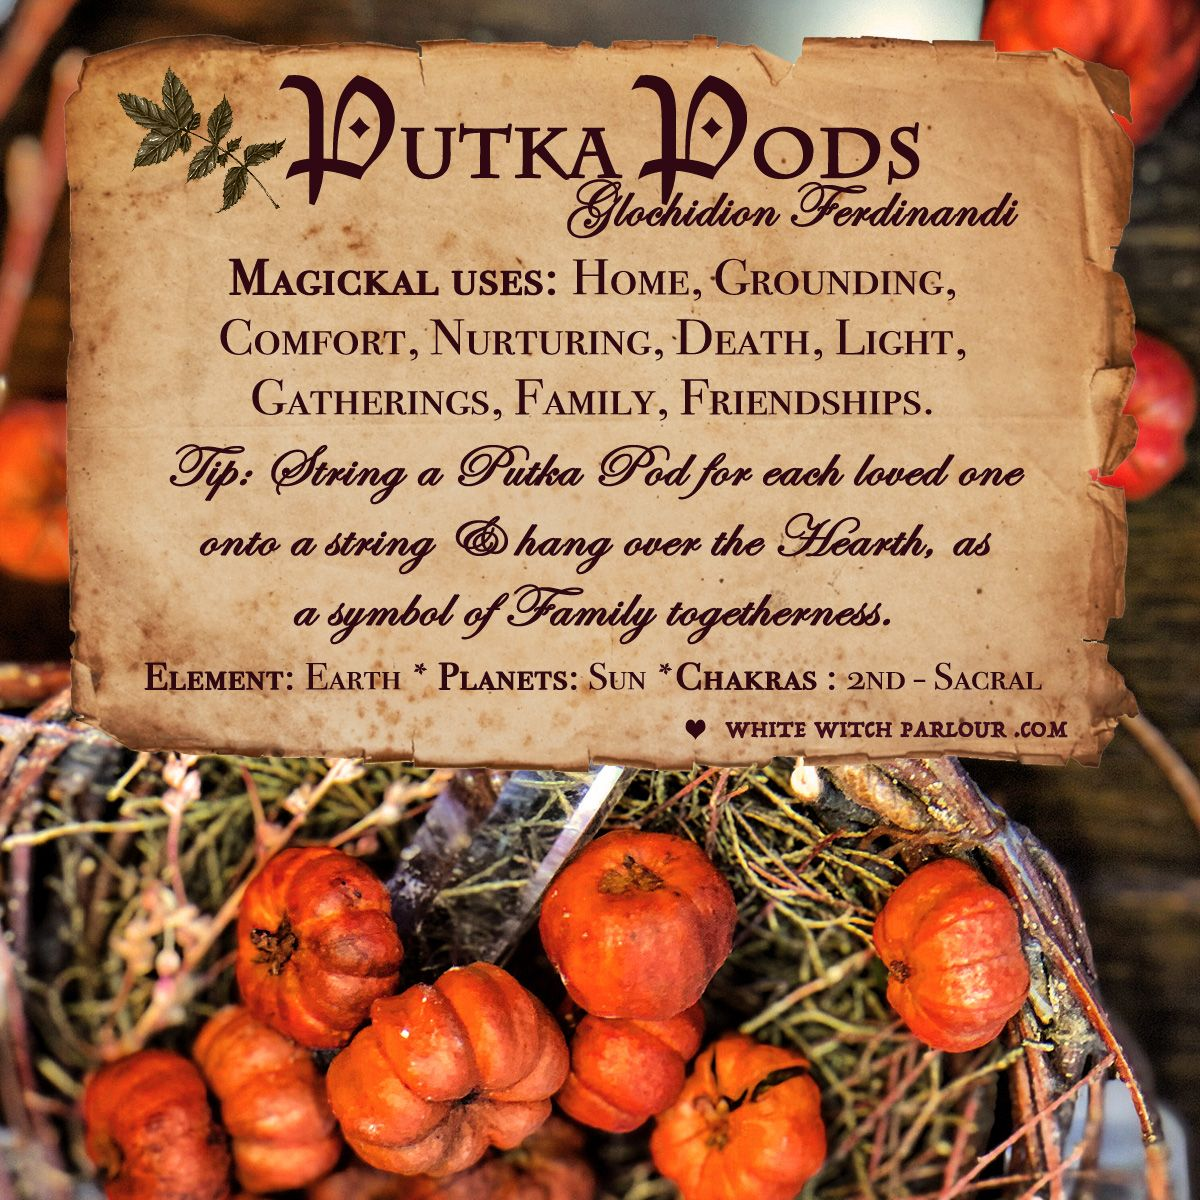 Putka Pods Apothecary Dried Herbs For Warmth Comfort Family Togetherness Drying Herbs Witch Herbs Magic Herbs